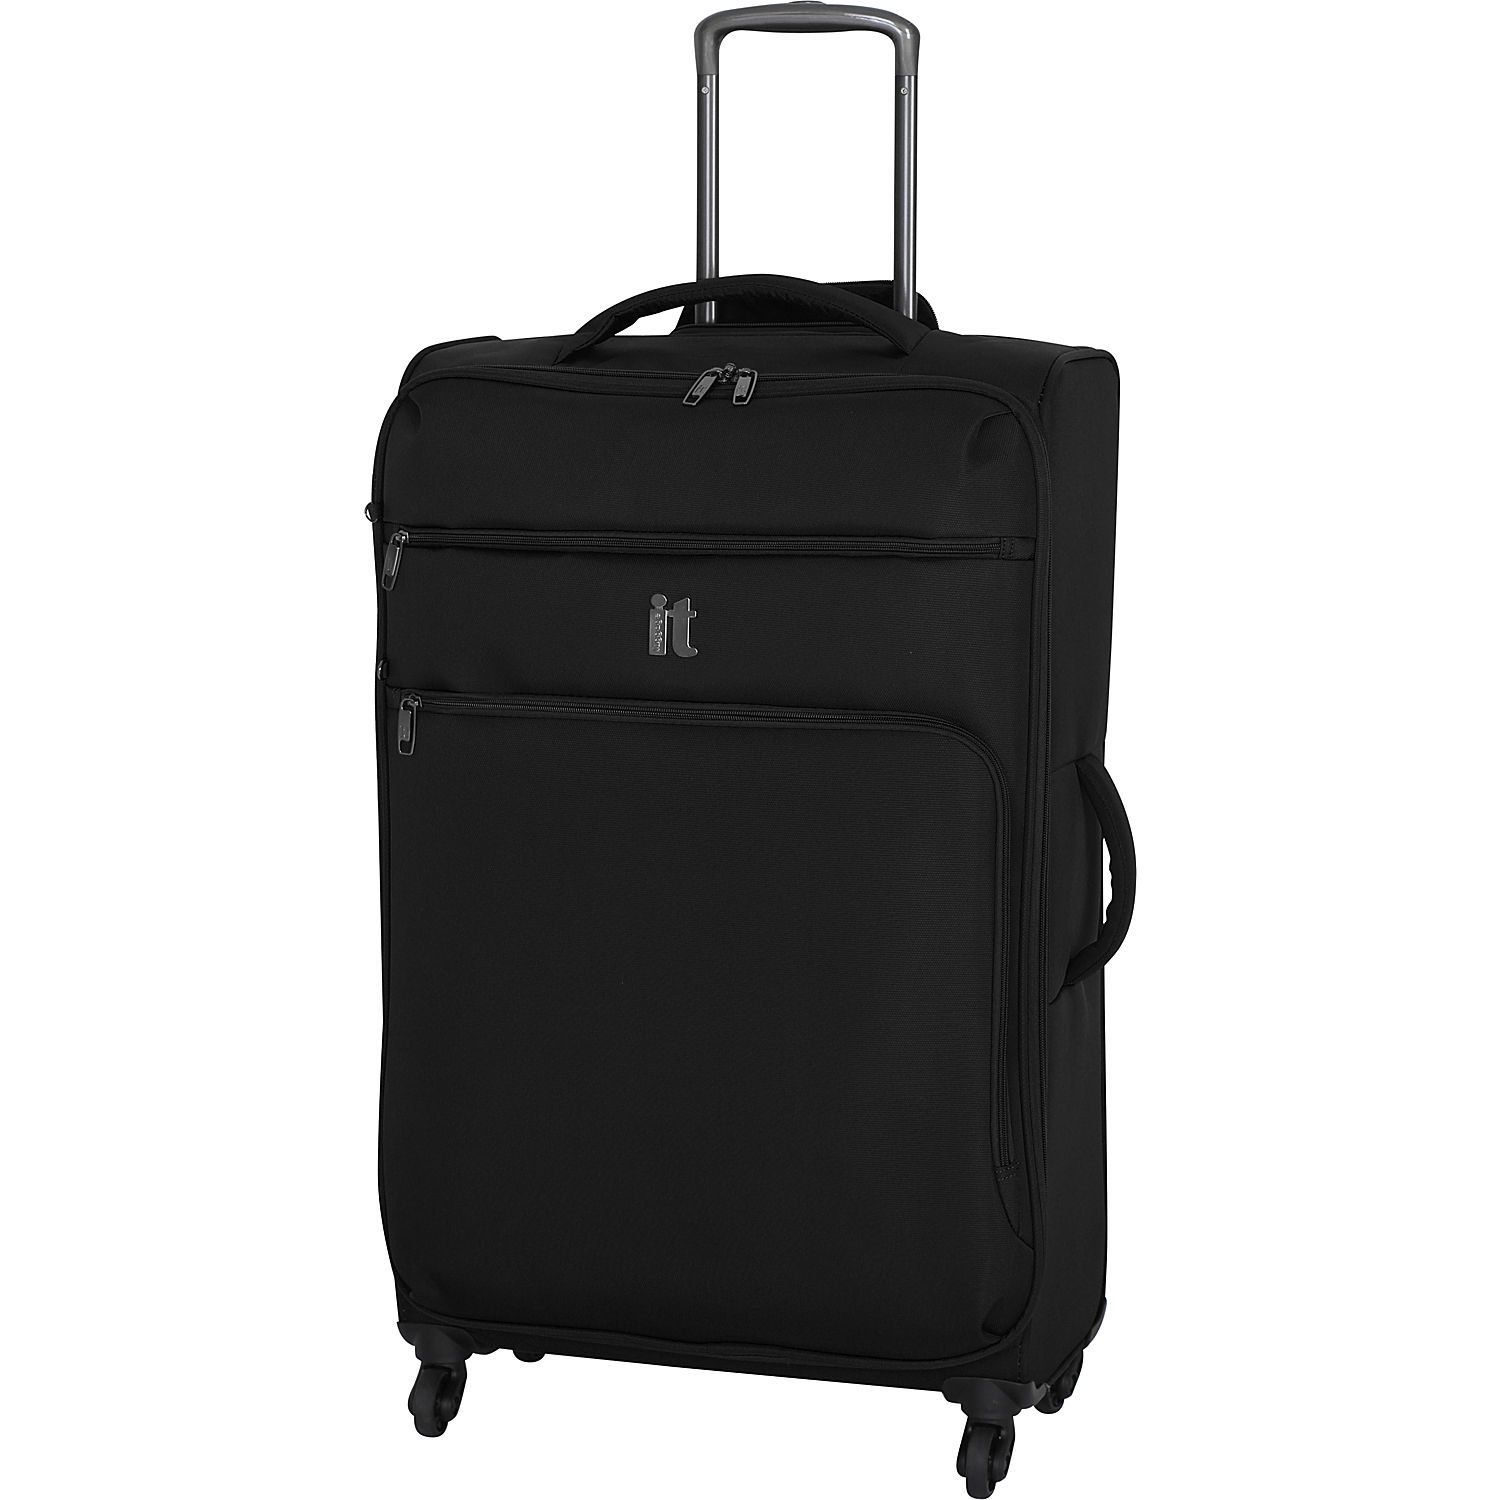 4d7816920c Buy the IT Luggage MegaLite Luggage Collection 31